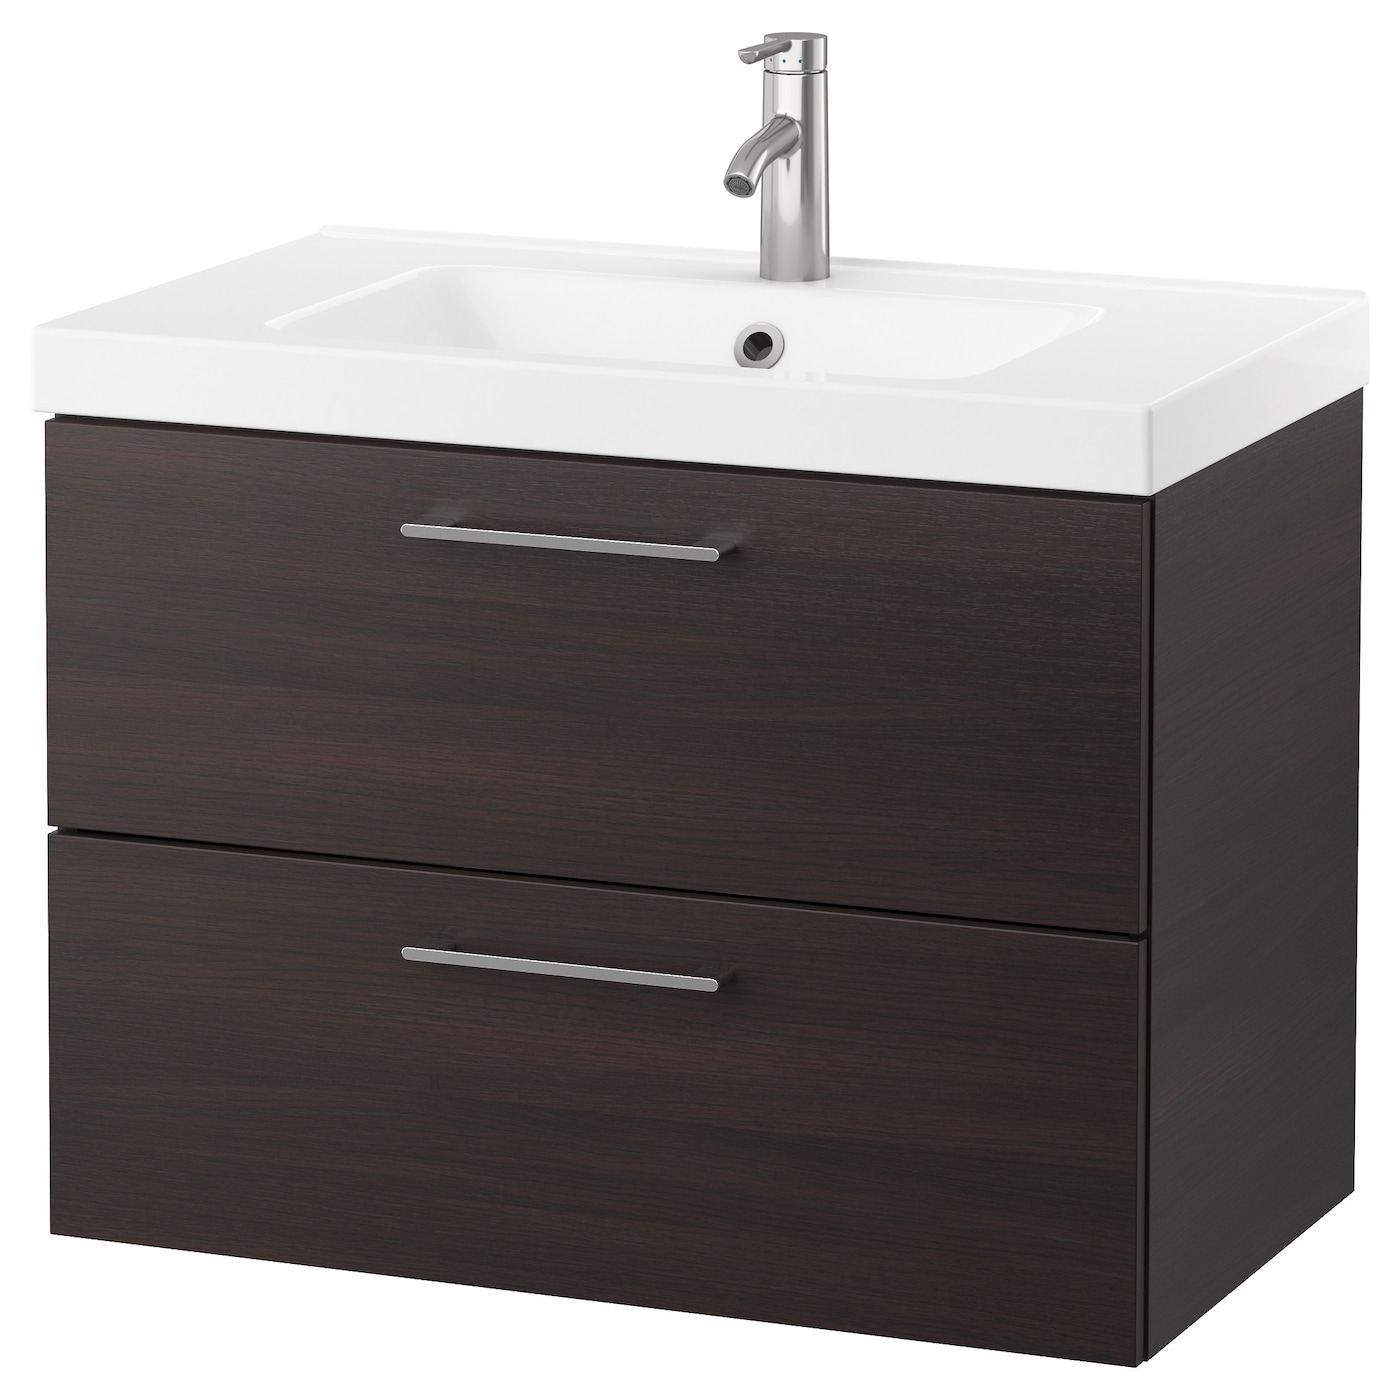 brown bathroom cabinet bathroom vanity units ikea ireland dublin 12183